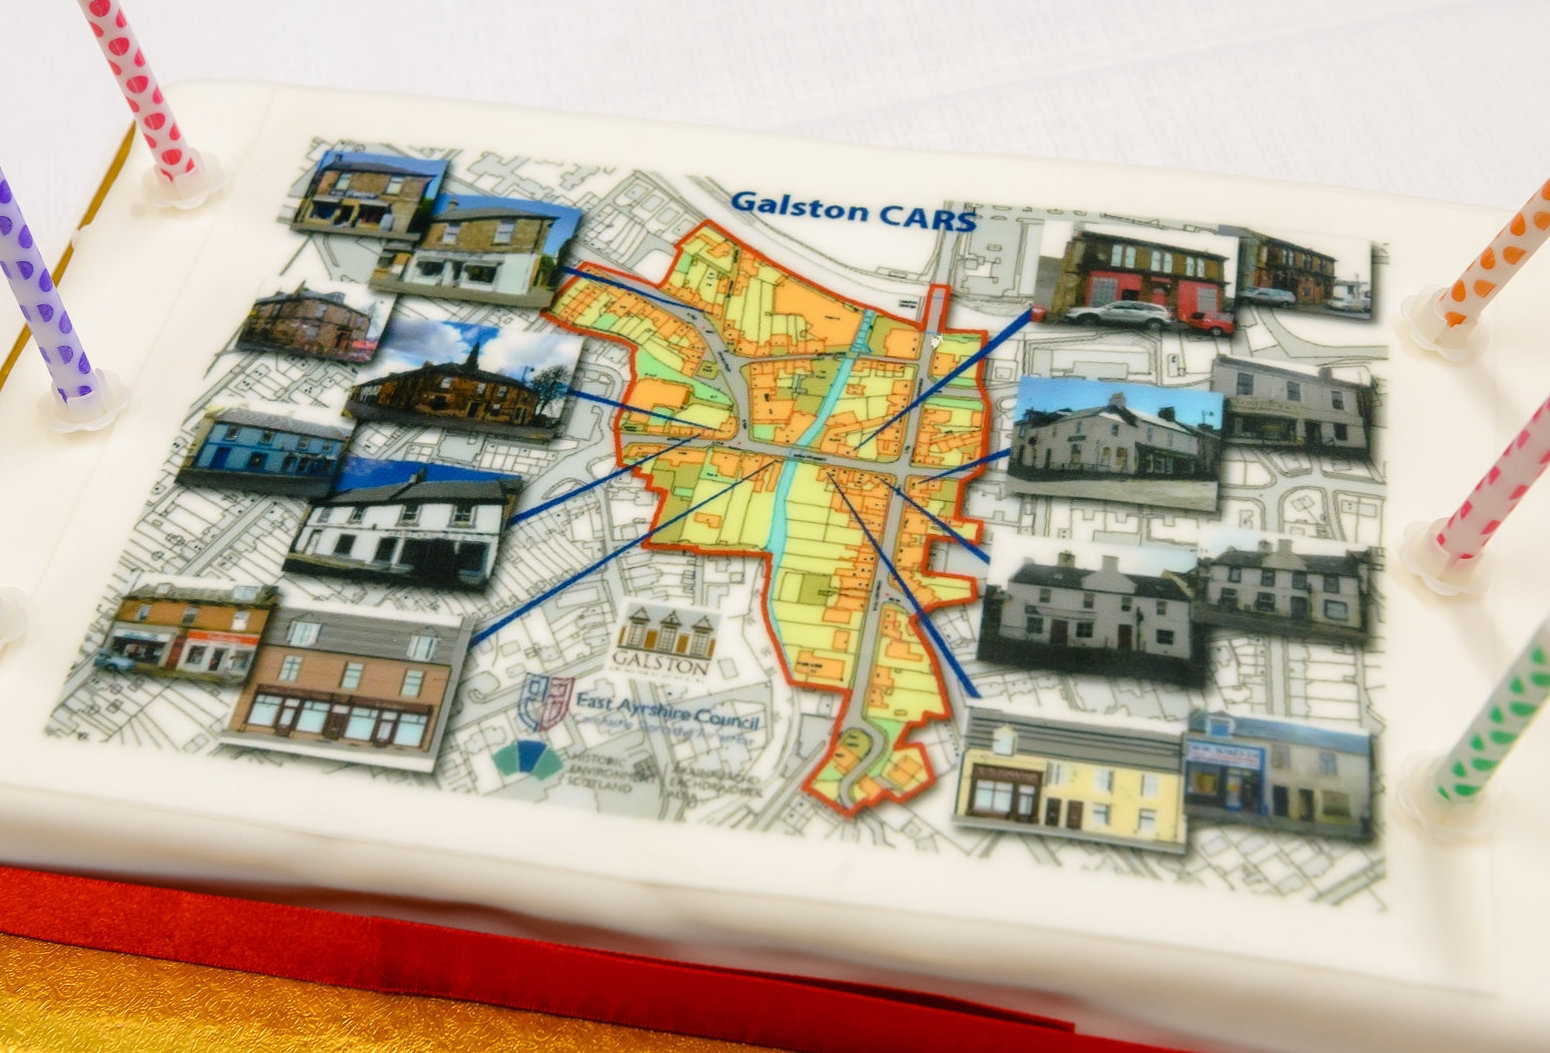 A cake at an event to celebrate the Galston CARS scheme